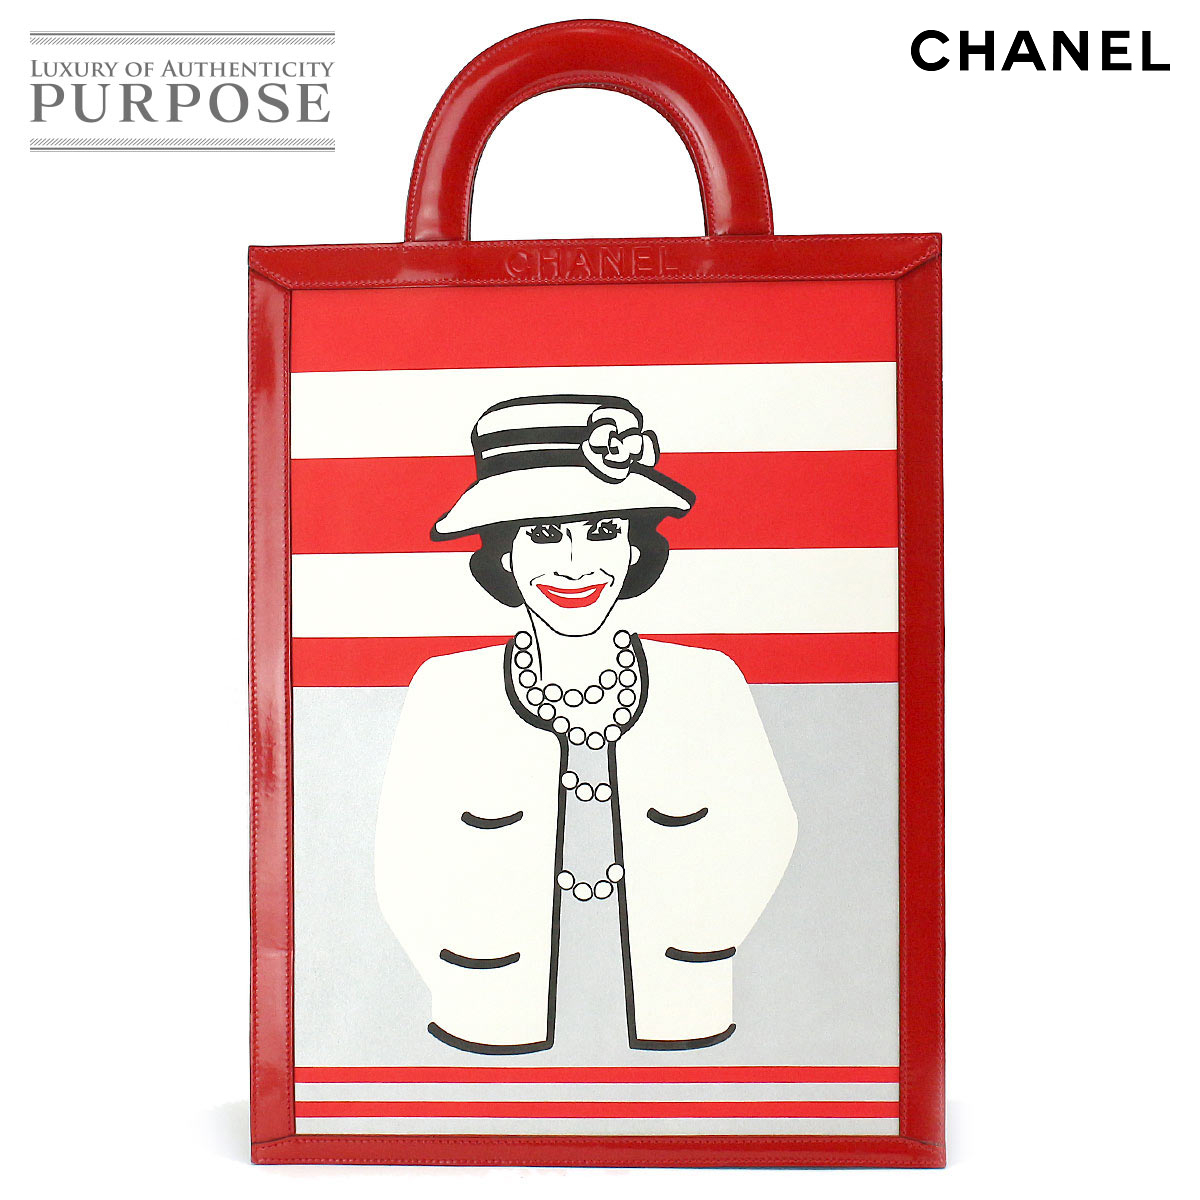 98fb184c2e6b Chanel CHANEL mademoiselle tote bag enamel leather red white Coco Chanel